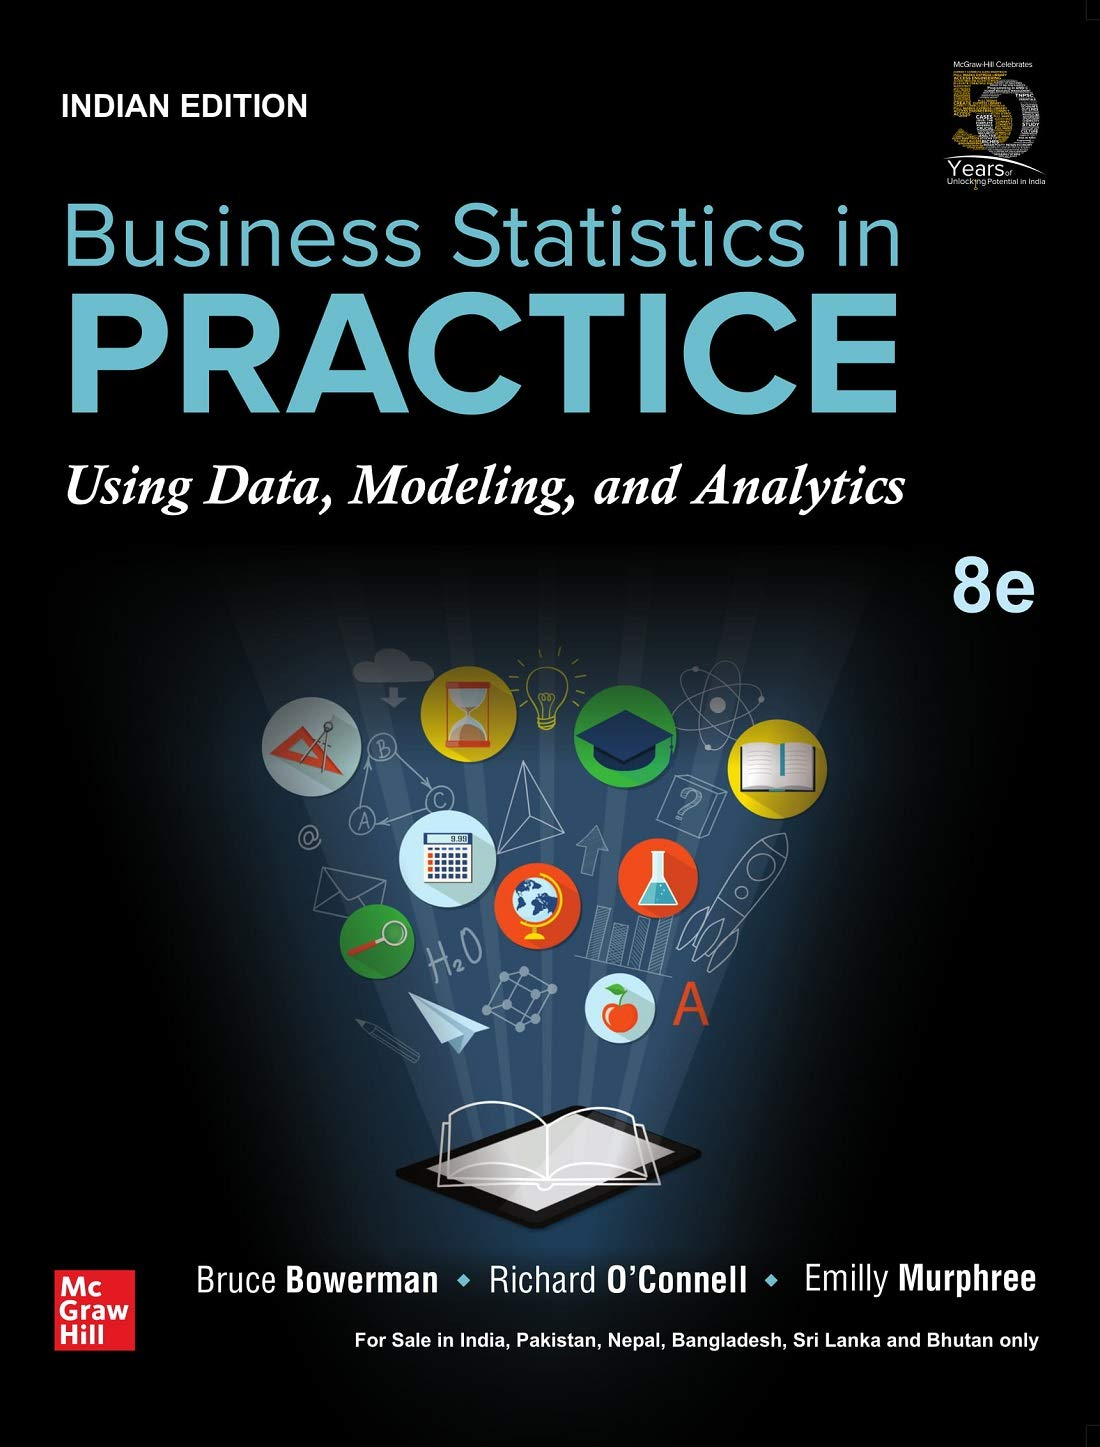 Business Statistics in Practice, Using Data, Modeling, and Analytics Paperback – 20 April 2019